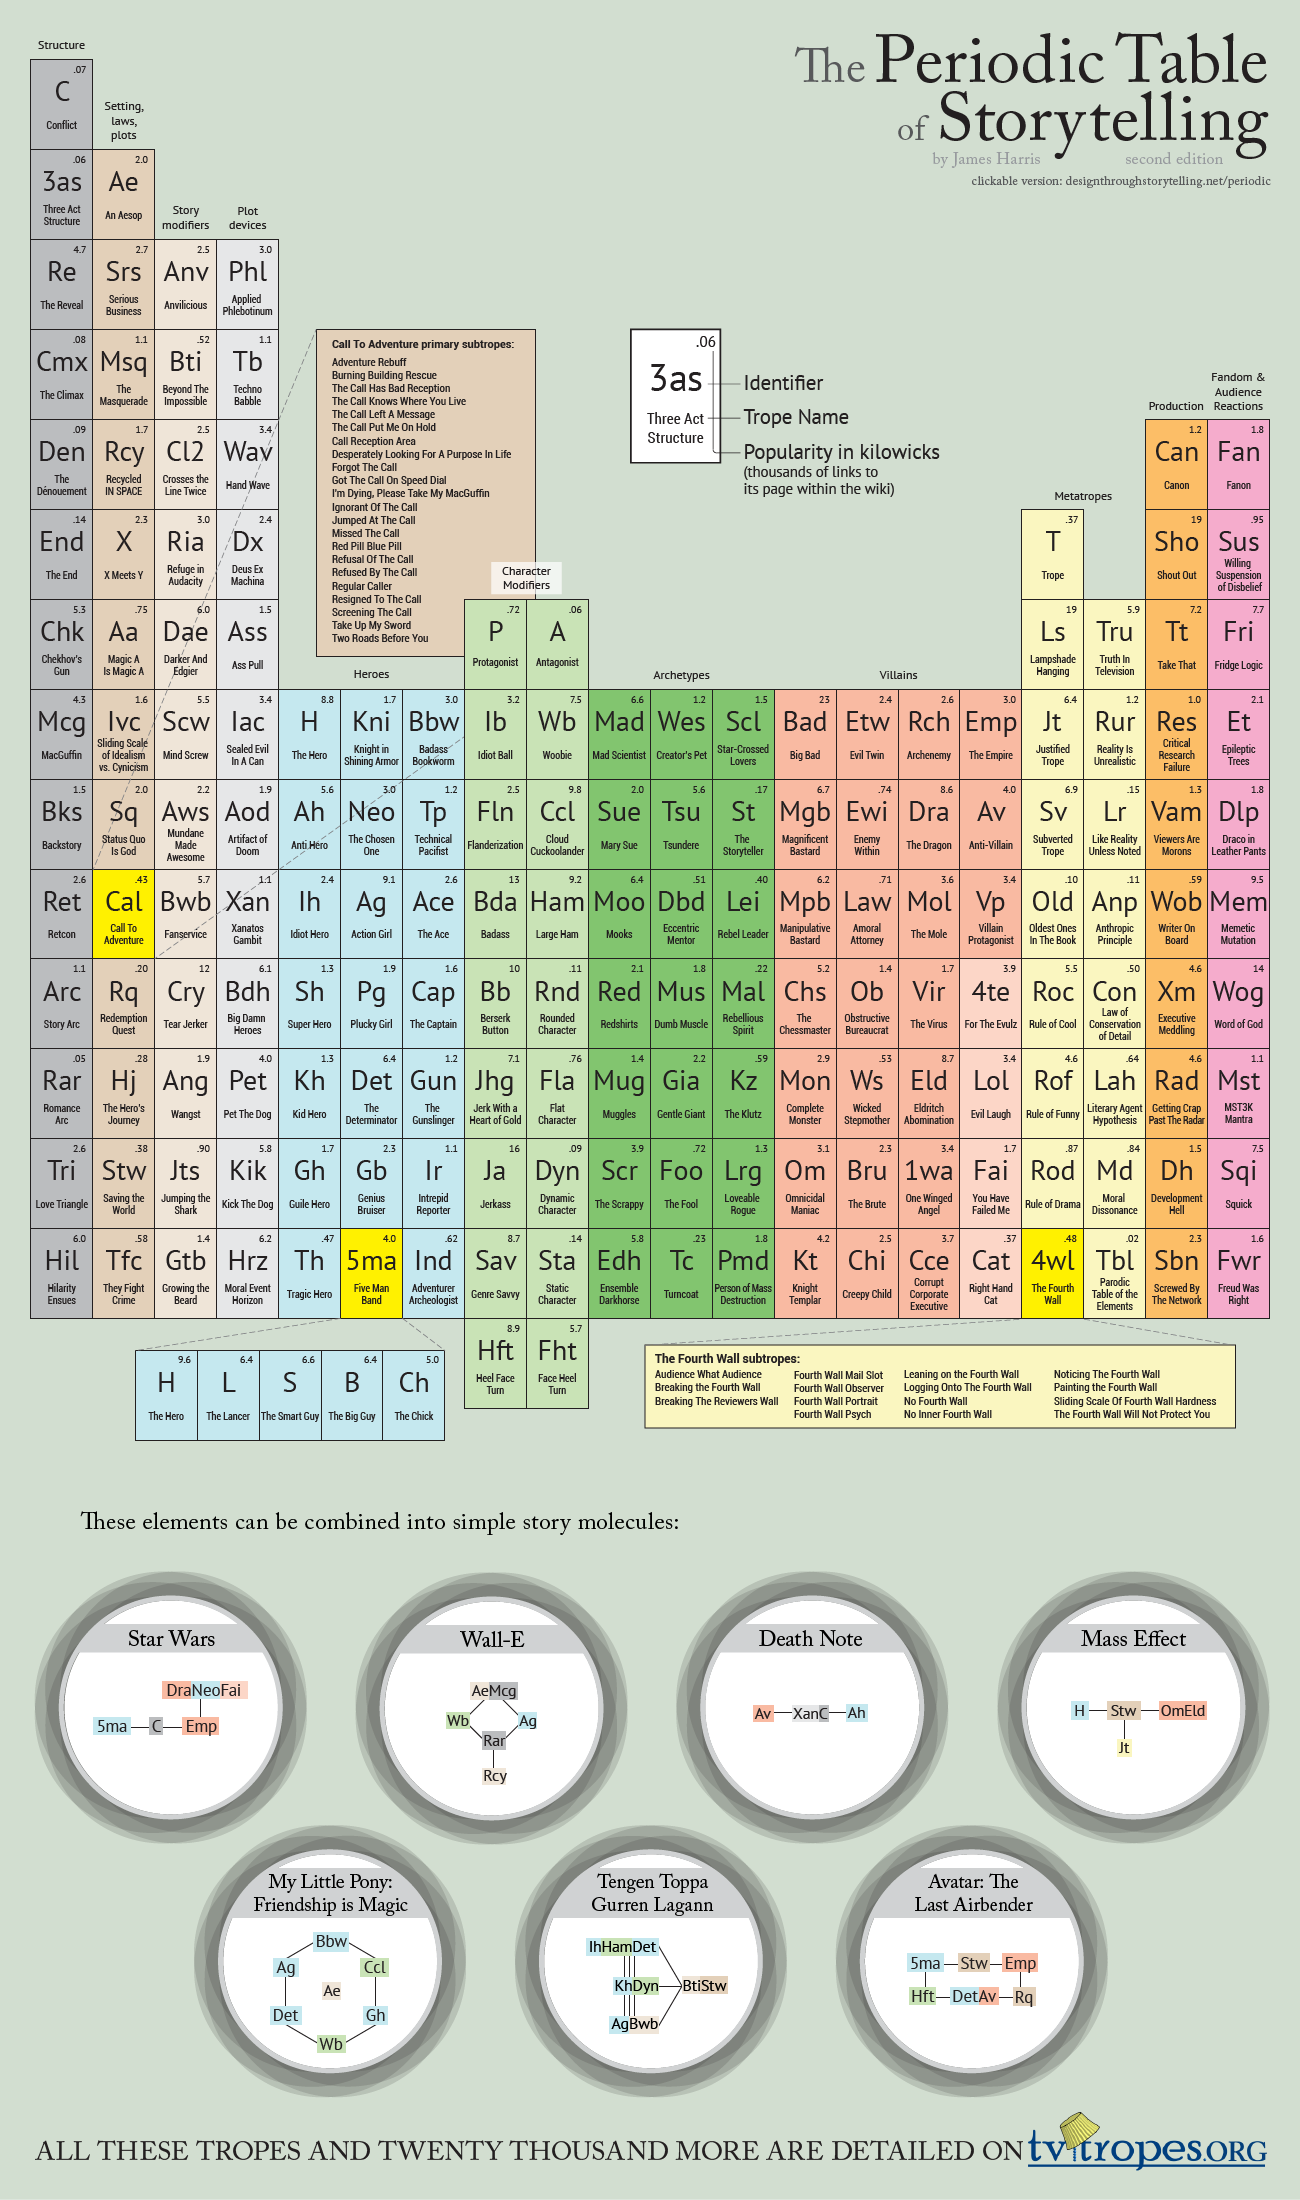 Tv tropes images the periodic table of storytelling hd wallpaper tv tropes images the periodic table of storytelling hd wallpaper and background photos gamestrikefo Image collections